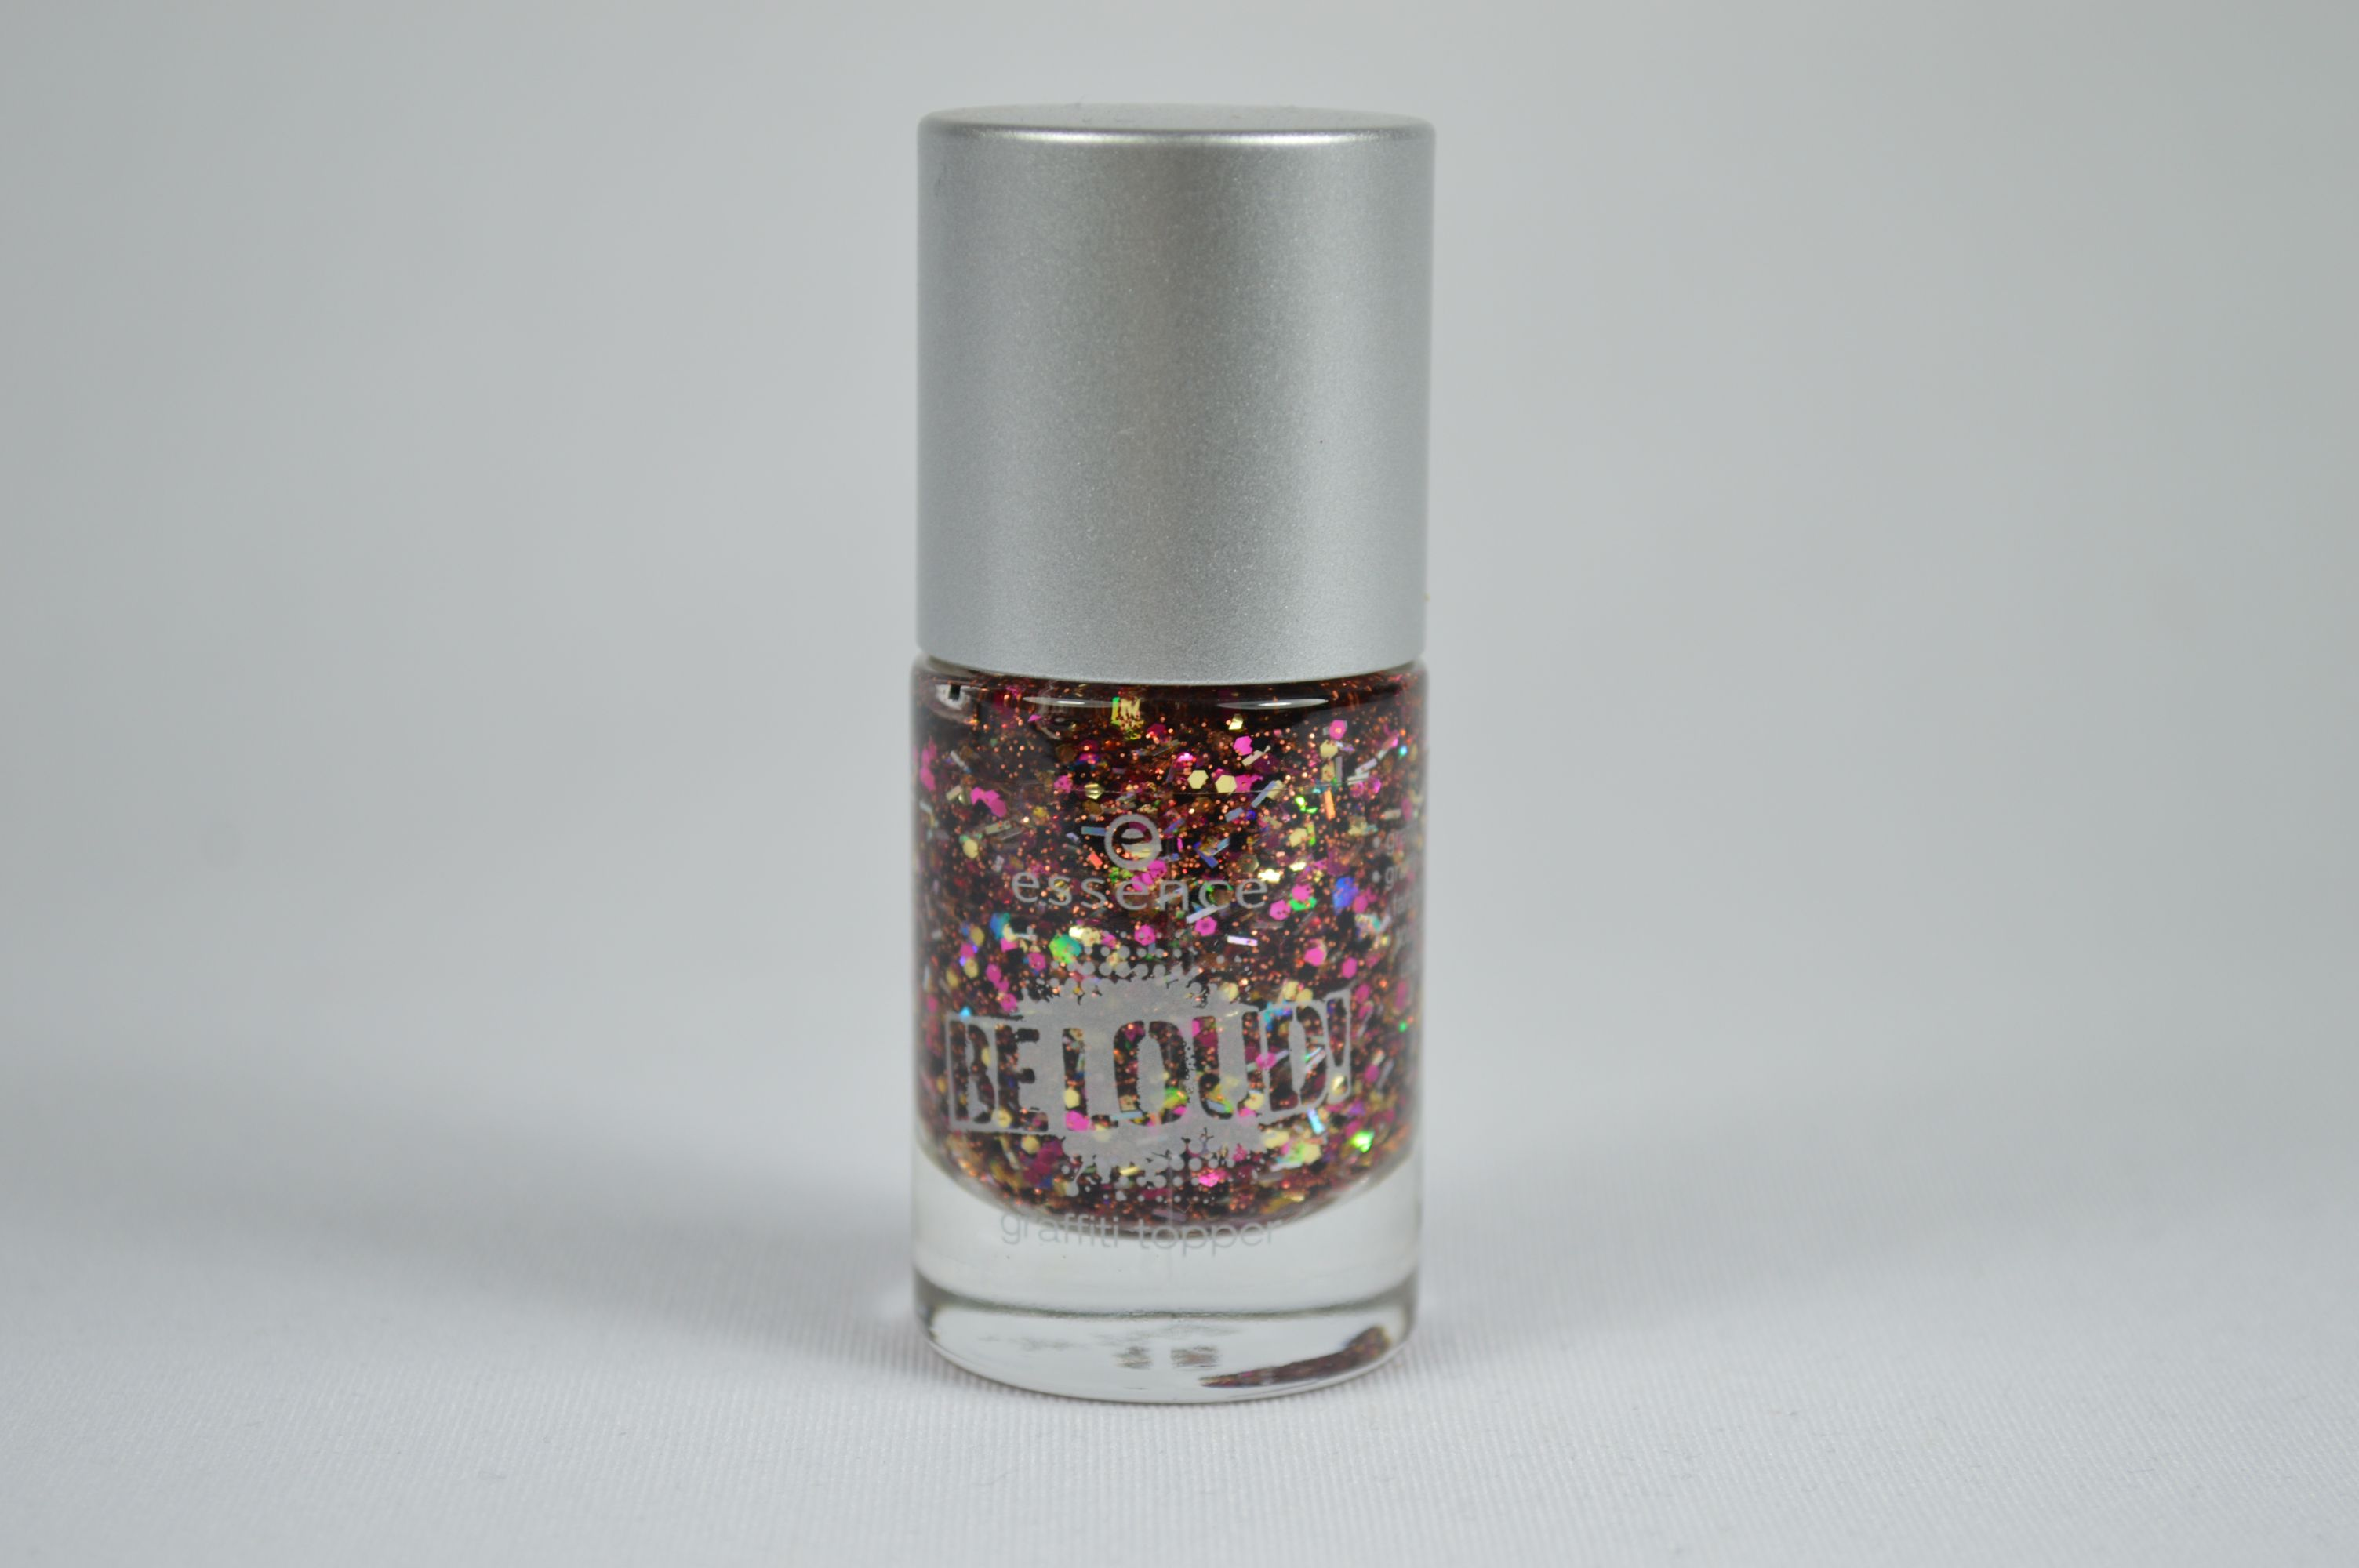 Aufgepinselt: Essence Be Loud Top Coat